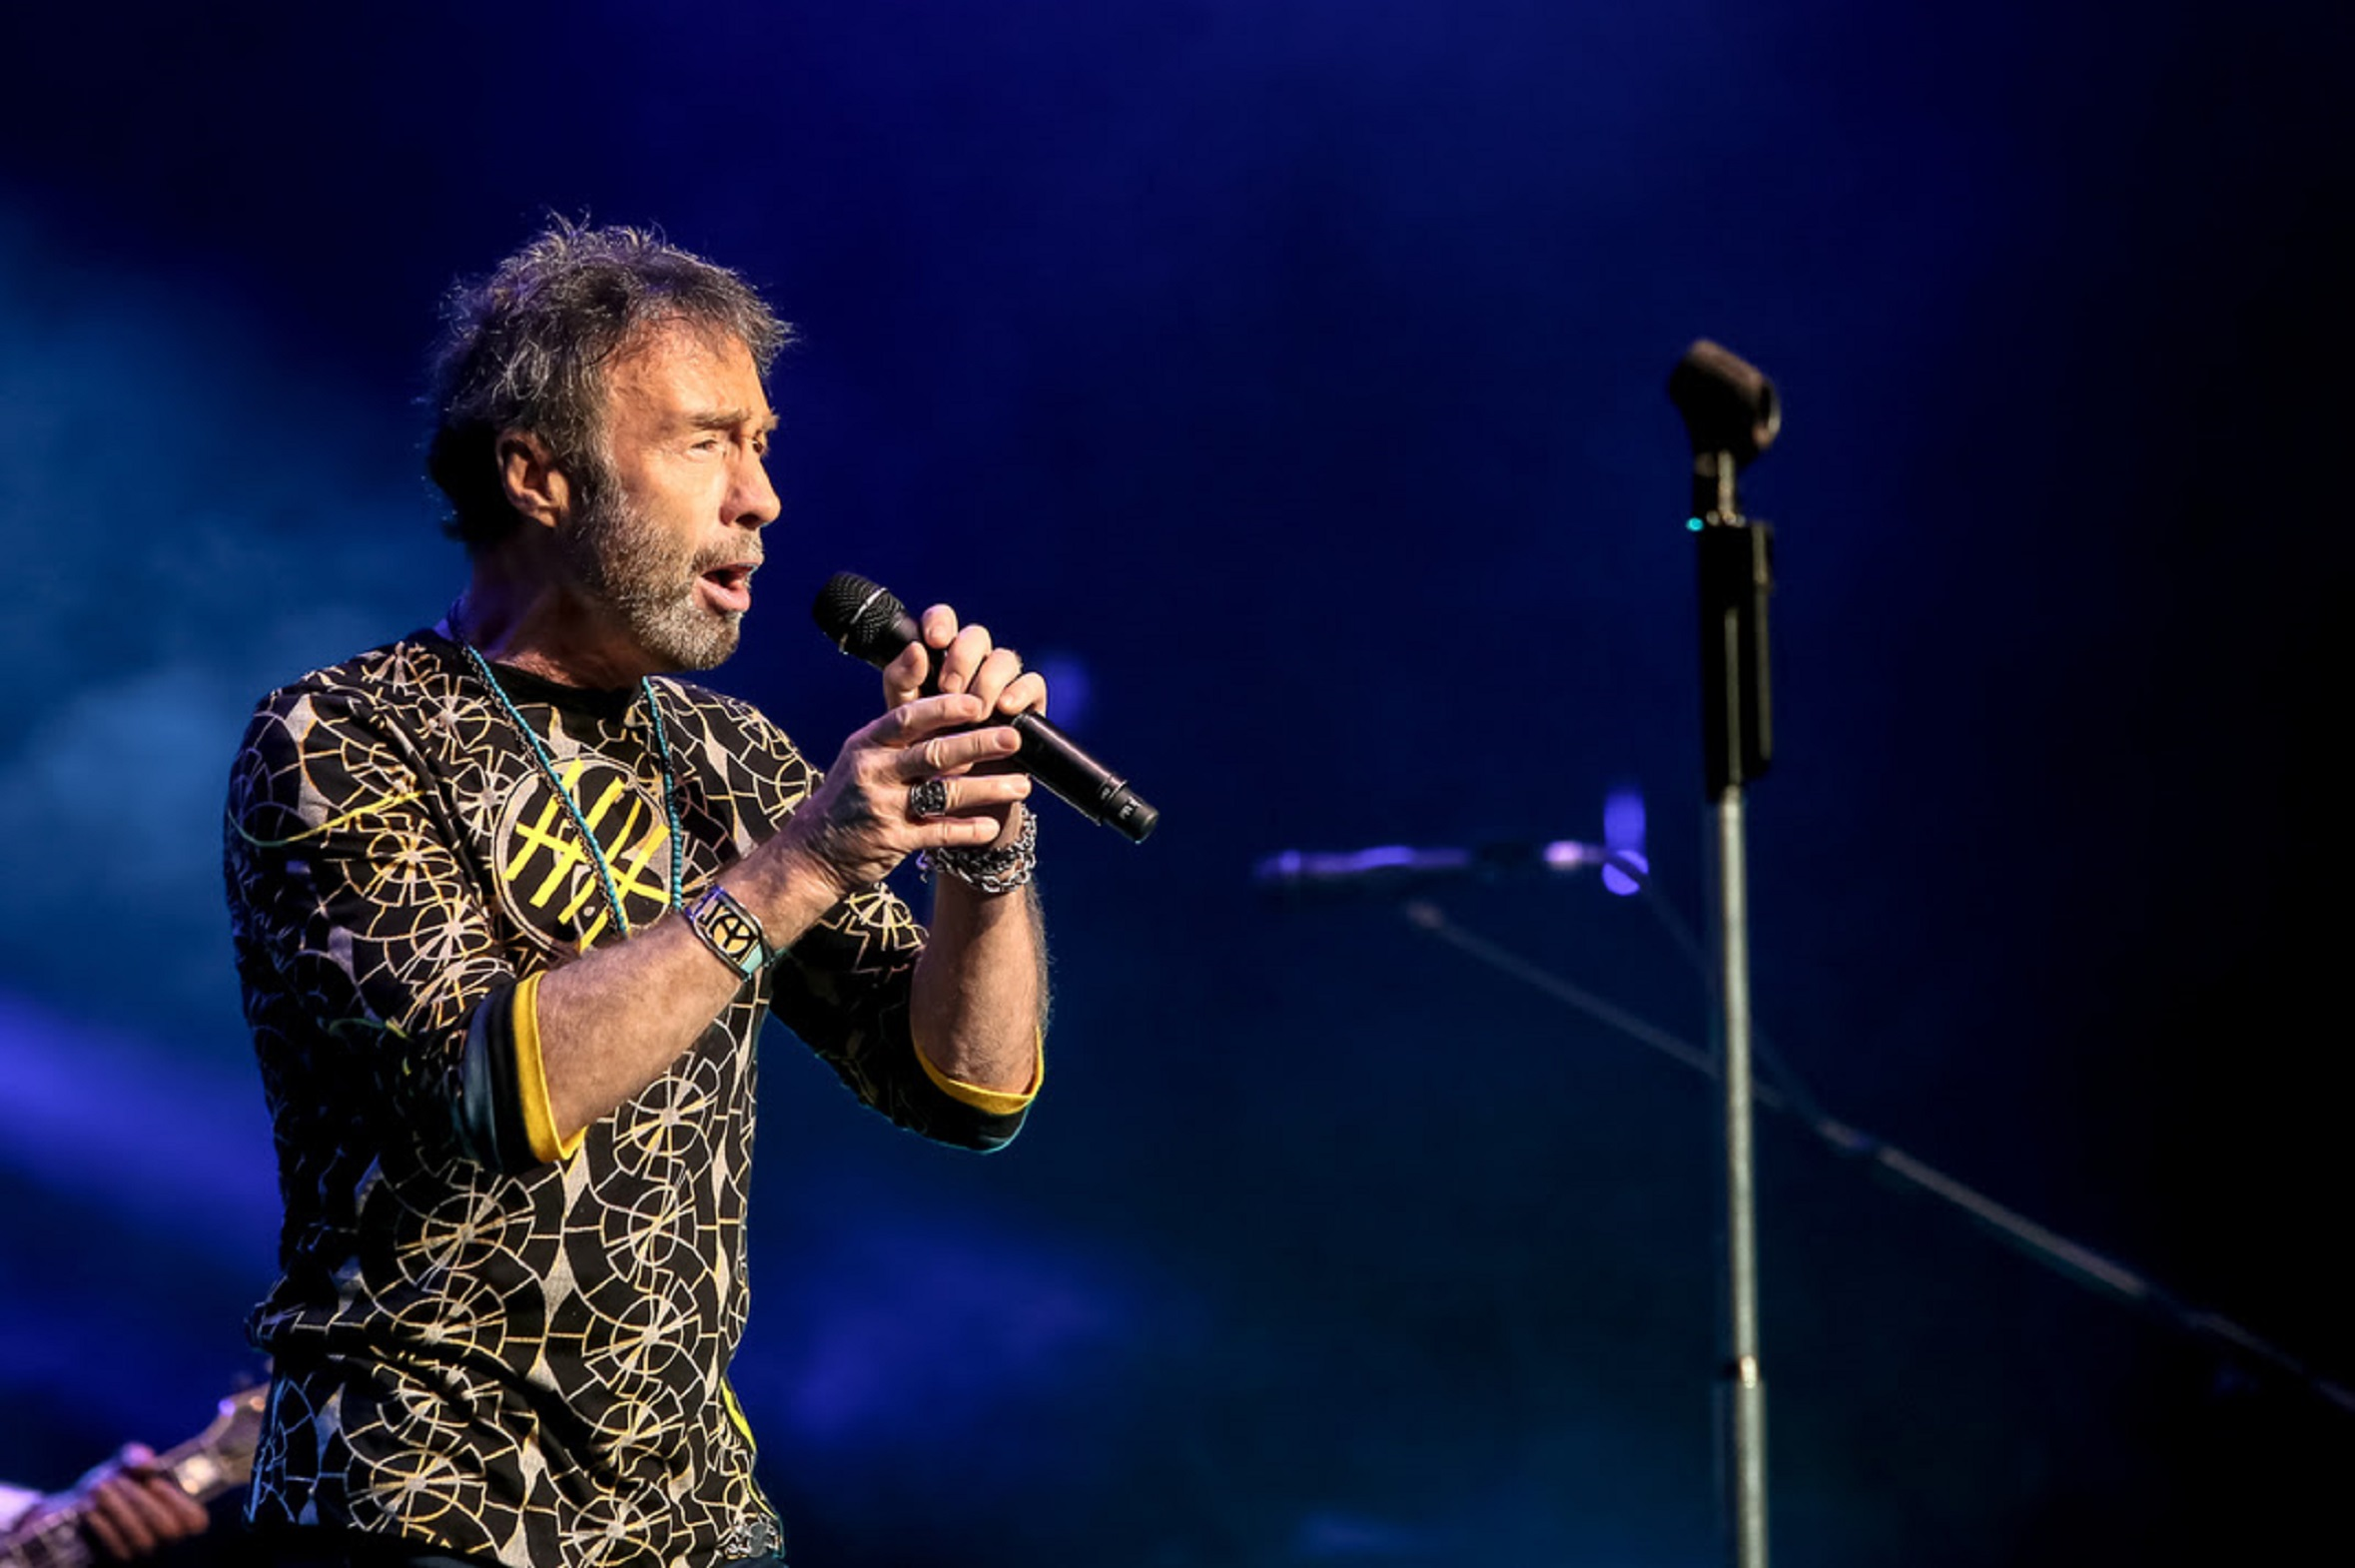 Paul Rodgers Brings 'Free Spirit' to Quarto Valley Records